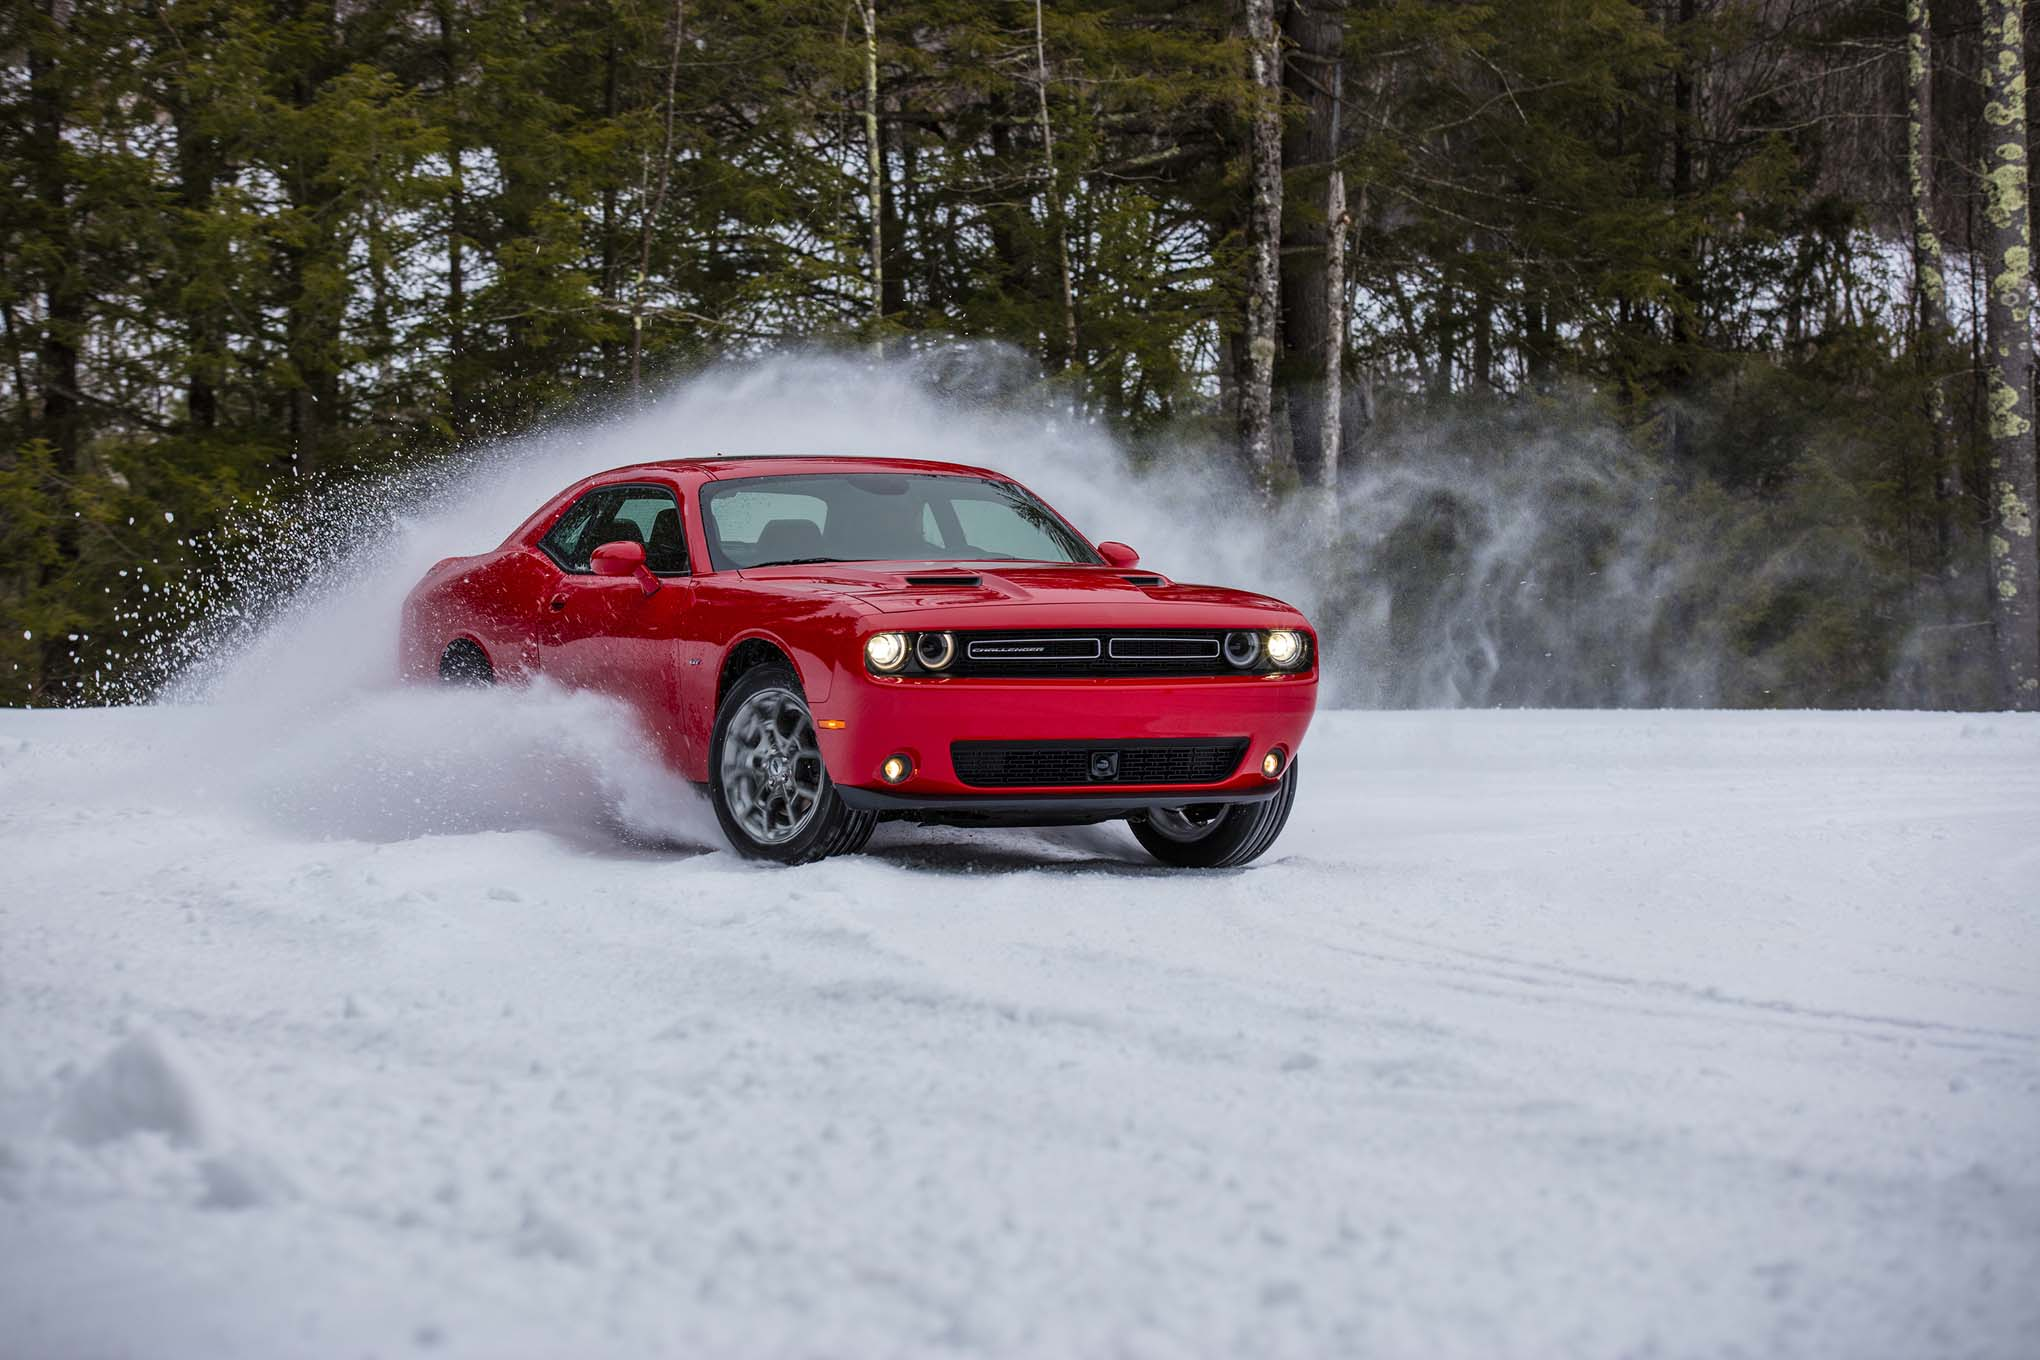 Dodge Challenger Gt Is The Latest Car To Make Awd History Hagerty Media